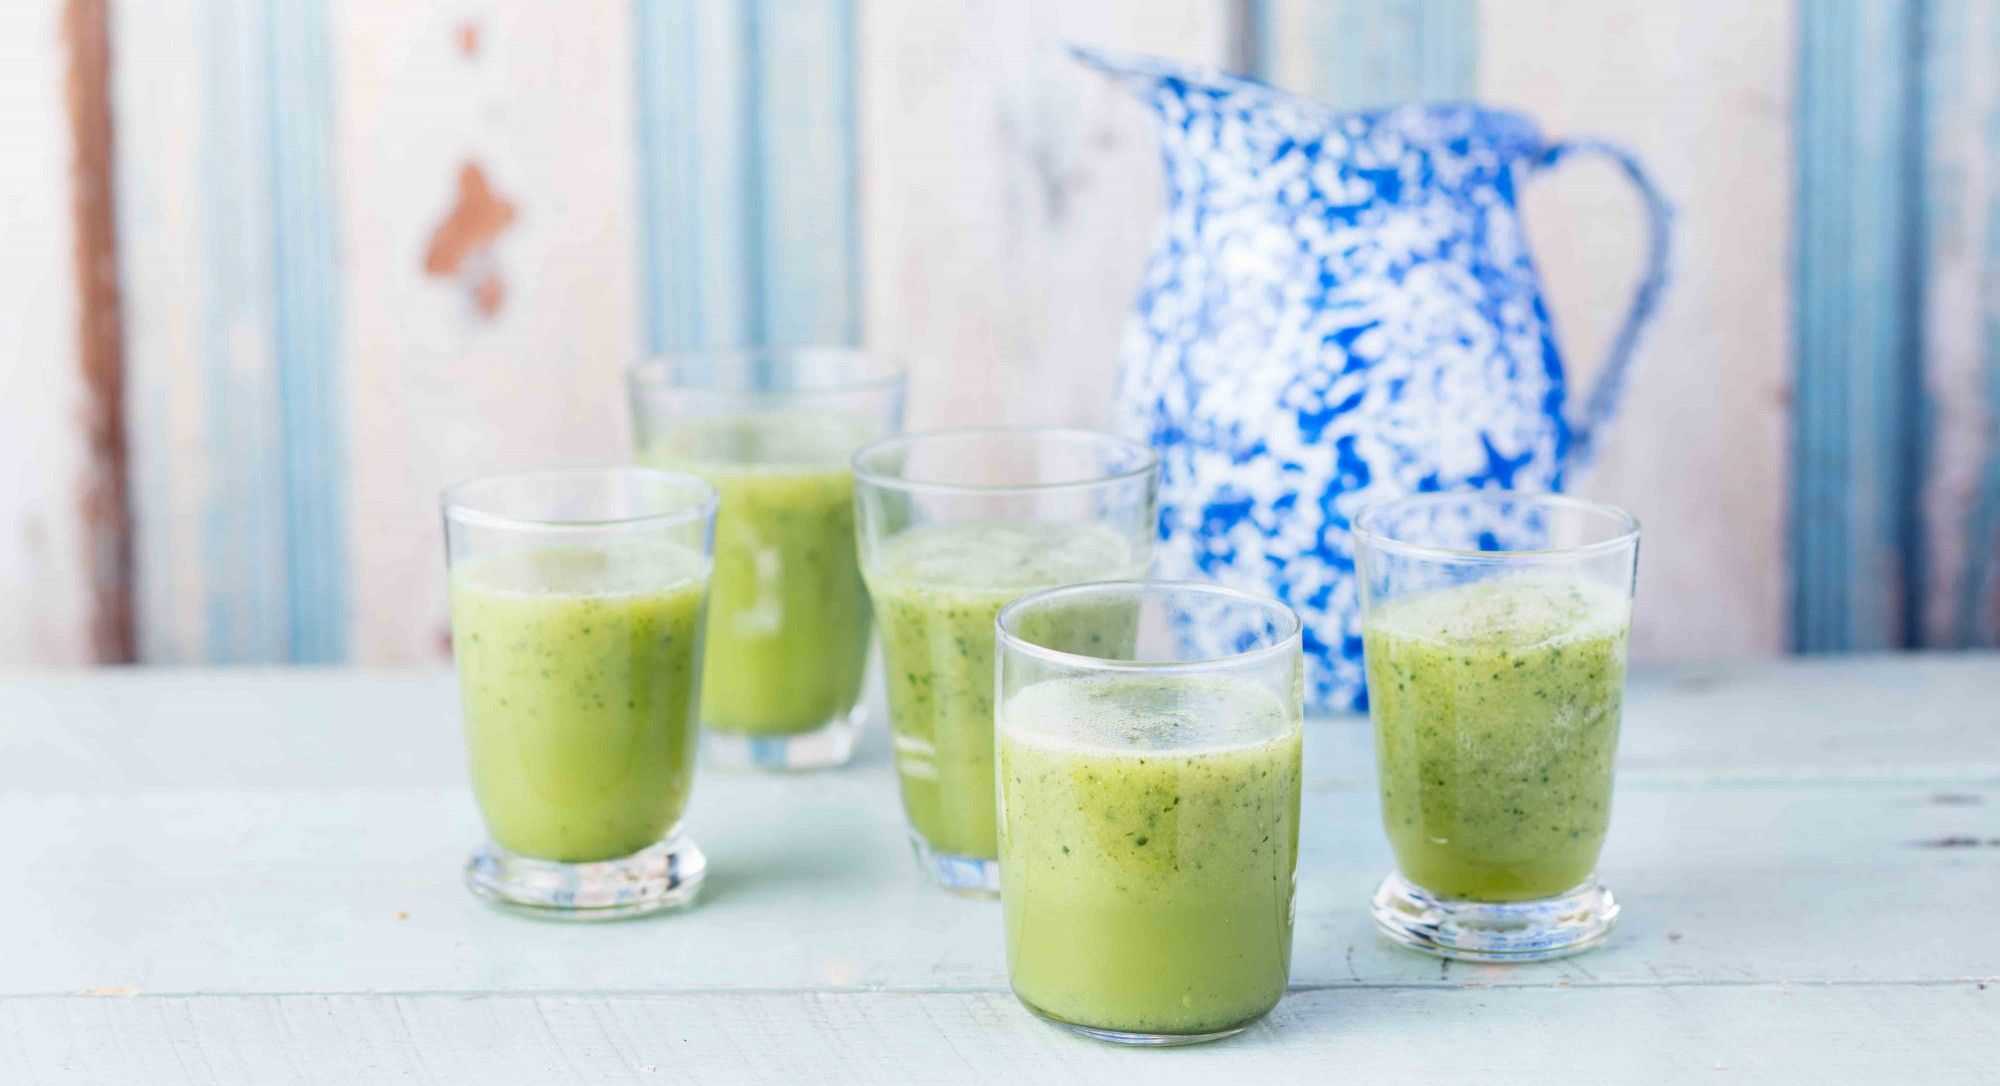 A Cucumber-Mint Smoothie to Detoxify and Reset Your System